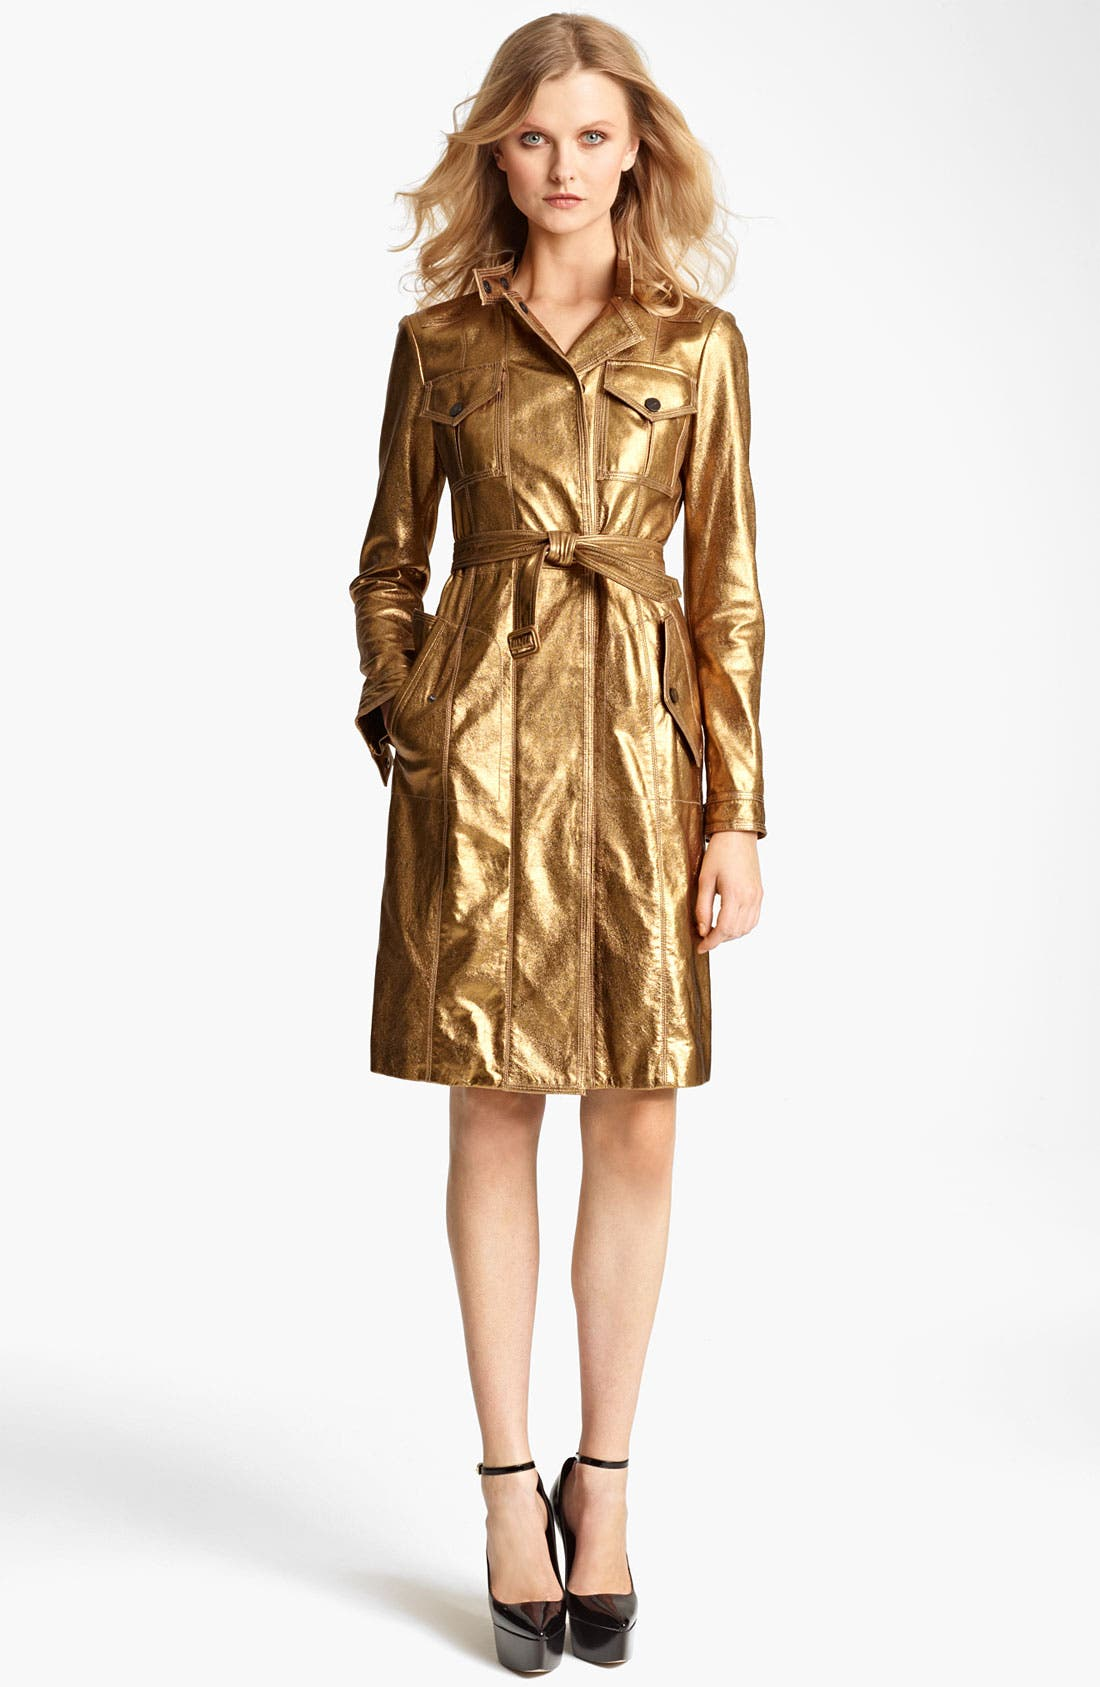 Alternate Image 1 Selected - Burberry London Lightweight Metallic Leather Trench Coat